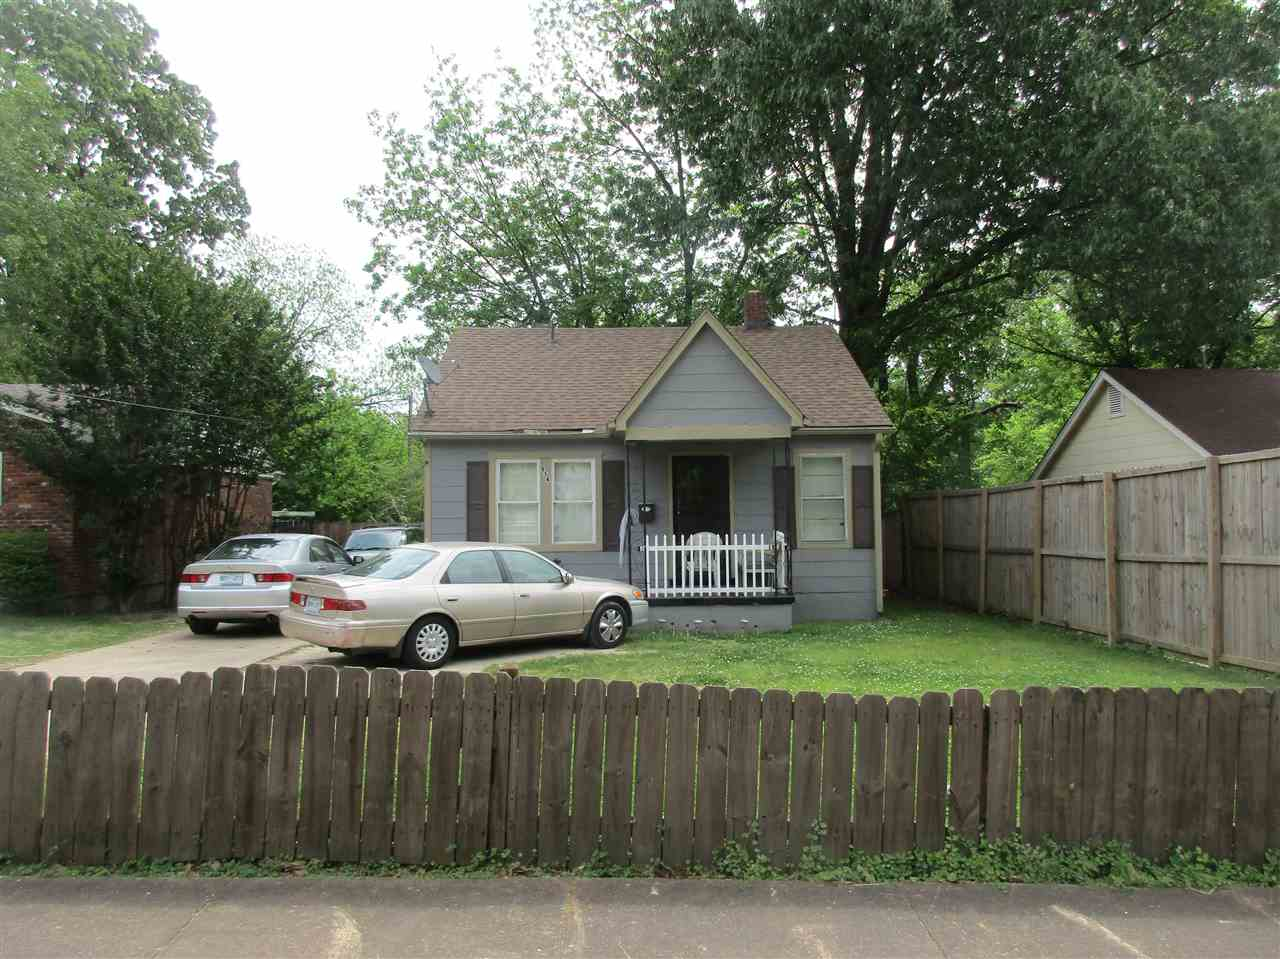 Property for sale at 954 Brower Ave, Memphis,  TN 38111